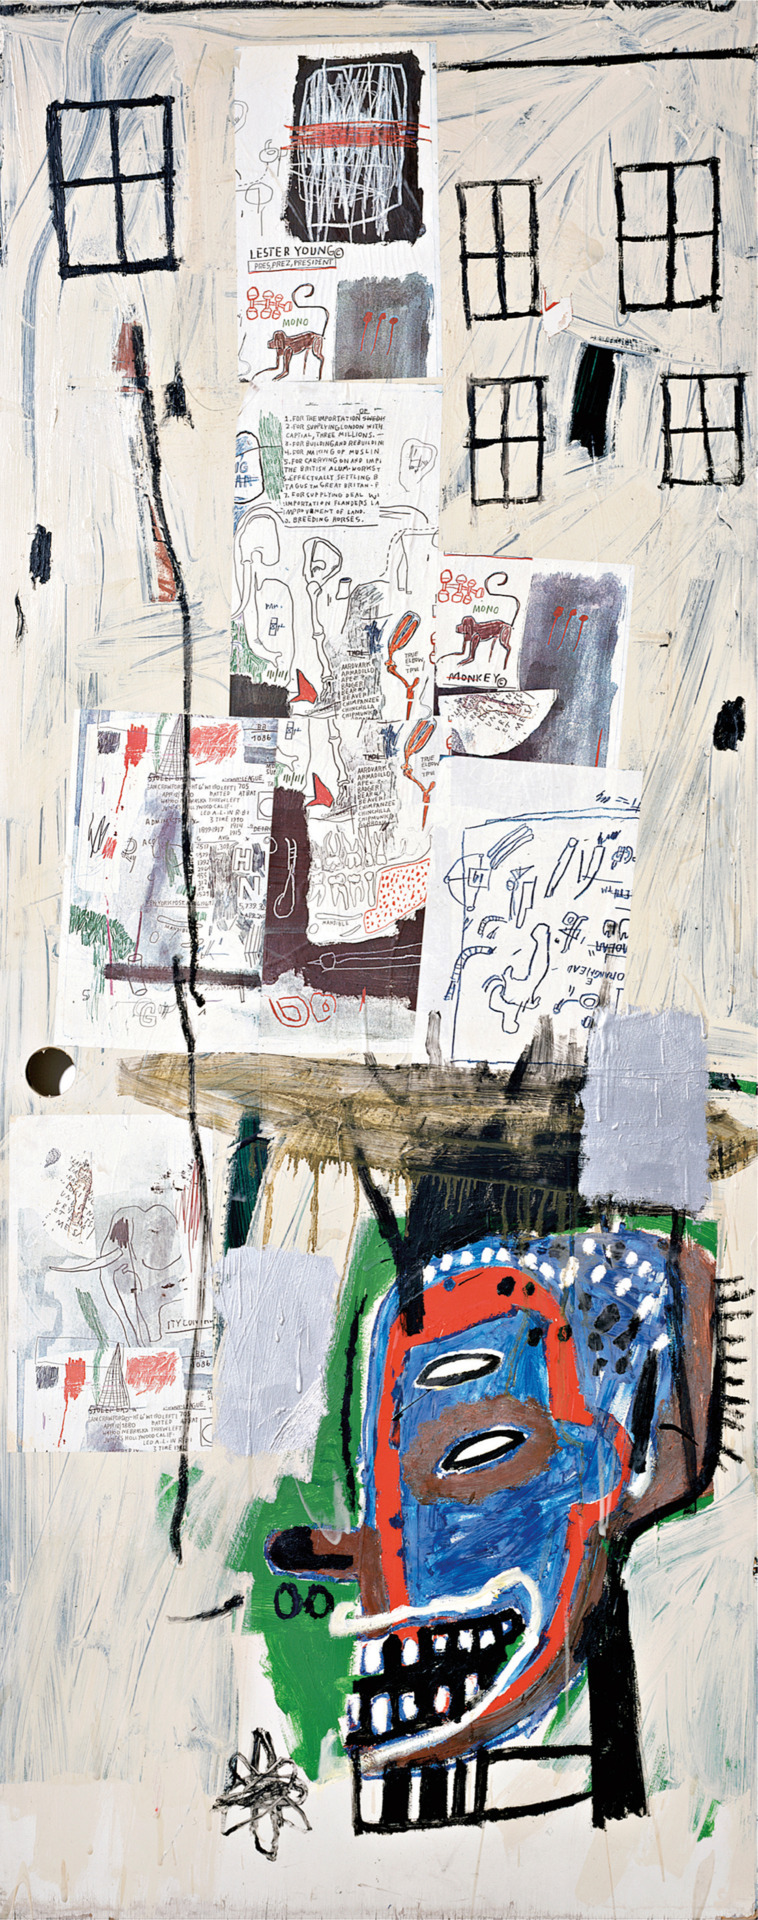 museumnerd:  Why are there almost never works by Basquiat on display in NYC museums? phillipsdepury:  Jean-Michel Basquiat's Overrun, 1985 sold for £1,127,650 at the Contemporary Art Evening Sale, 17 February 2011, London. In a manner similar to the French painter Jean Dubuffet, Overrun's  heavily vertical format and its five black window frames at the top are  suggestive of a vibrant urban landscape. Basquiat was greatly influenced  by the high-rise skyscrapers of his native New York City and  continuously referenced it. His teenage years spent as a wandering  homeless artist, during which time he tagged mysterious and witty  statements under the pseudonym SAMO, left a lasting impression. Art  historians have long drawn comparisons with Jean Dubuffet's childlike  and naïve style and his lack of interest in rationally coherent  compositions with a central perspective – a comparison most striking  when comparing Dubuffet's series Views of Paris with Overrun. Like  Basquiat, Dubuffet made graffiti the central motif of his art.Another  important feature to be seen here, and which can be seen elsewhere in  Basquiat's output, is the use of language, in the form of consciously  child-like scribbles and cryptic writings. While painting in the  basement of Annina Nosei's gallery, Basquiat had a book open to pages  illustrating Twombly's large, lyrical compositions which incorporate  text and image. While recalling similar inscriptions in the works of  Jean Dubuffet and Cy Twombly, Basquiat's words, whether crossed out,  repeated, or naively spelled, signify both the urgency and power with  which he could communicate through his art. Paradoxically, this was an  ability he so cruelly lacked in the real world so it is all the more  affecting when seen in his paintings.   I've wondered the same, I've only seen the best basquaits on view at either Christies previews or Pace Wildenstien gallery.